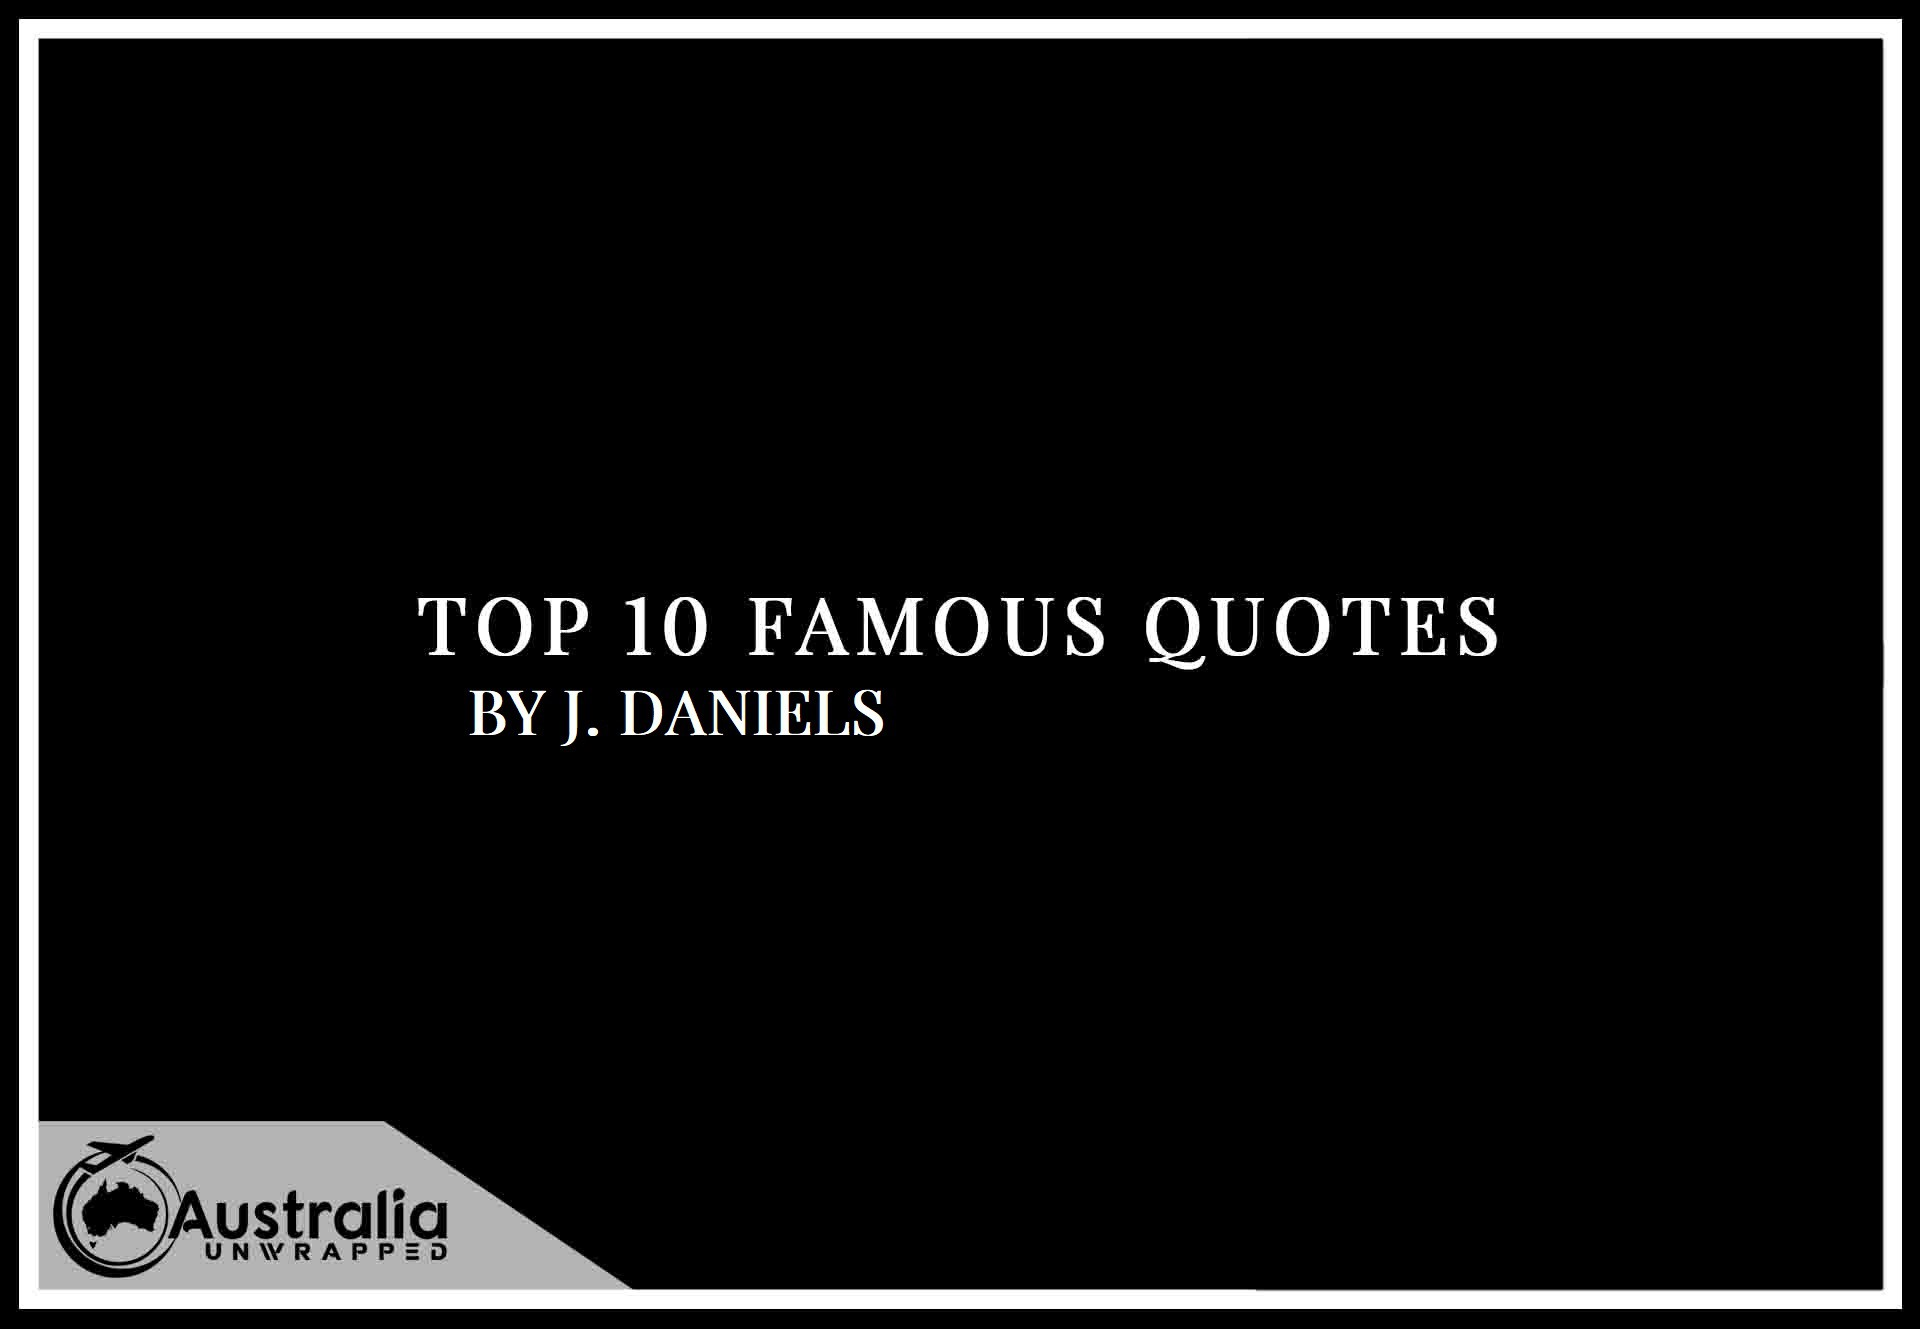 Top 10 Famous Quotes by Author J. Daniels